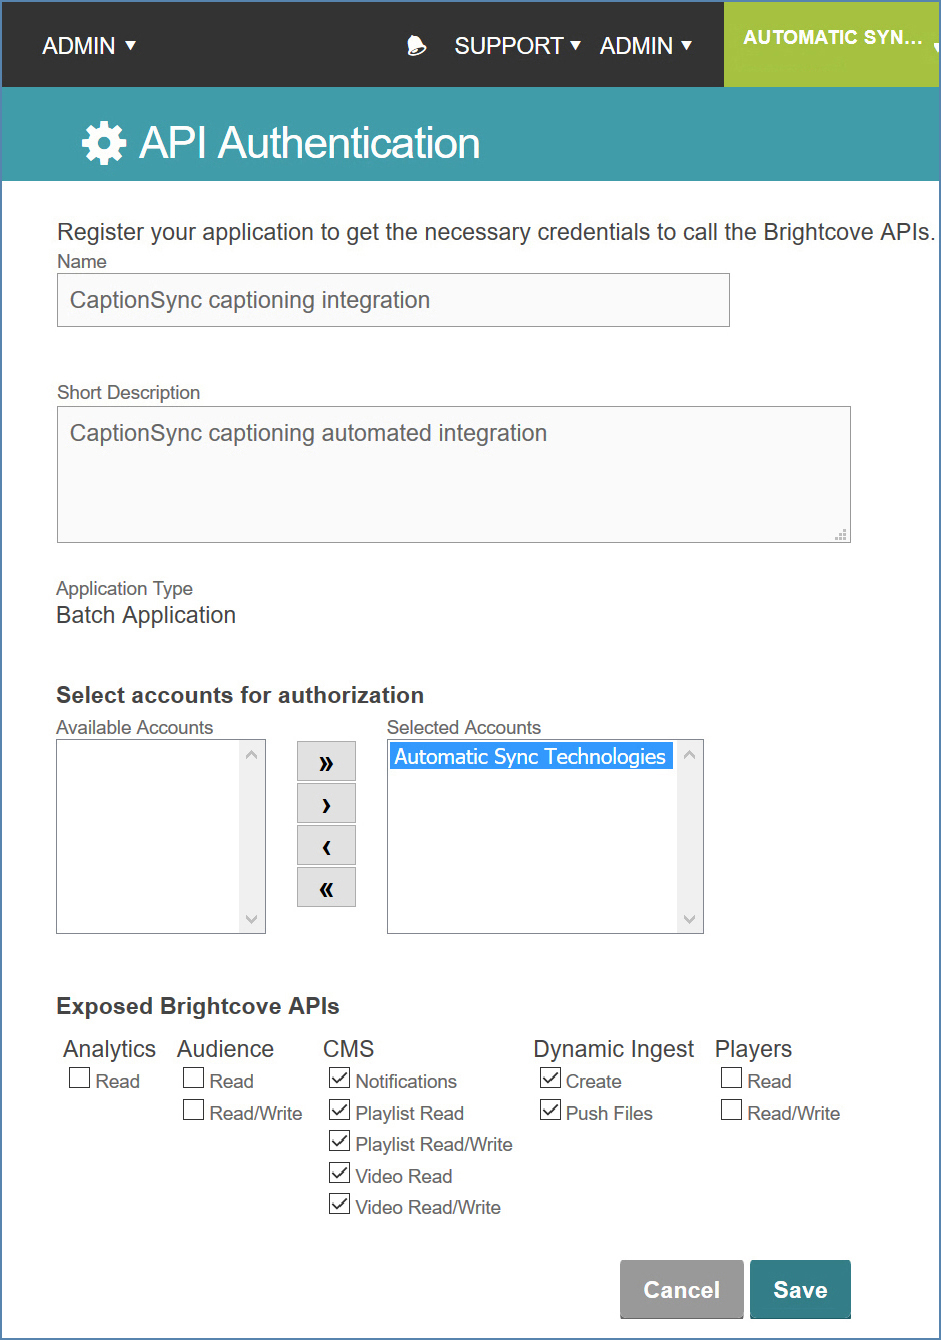 Image of the API Authentication page, on the Brightcove account